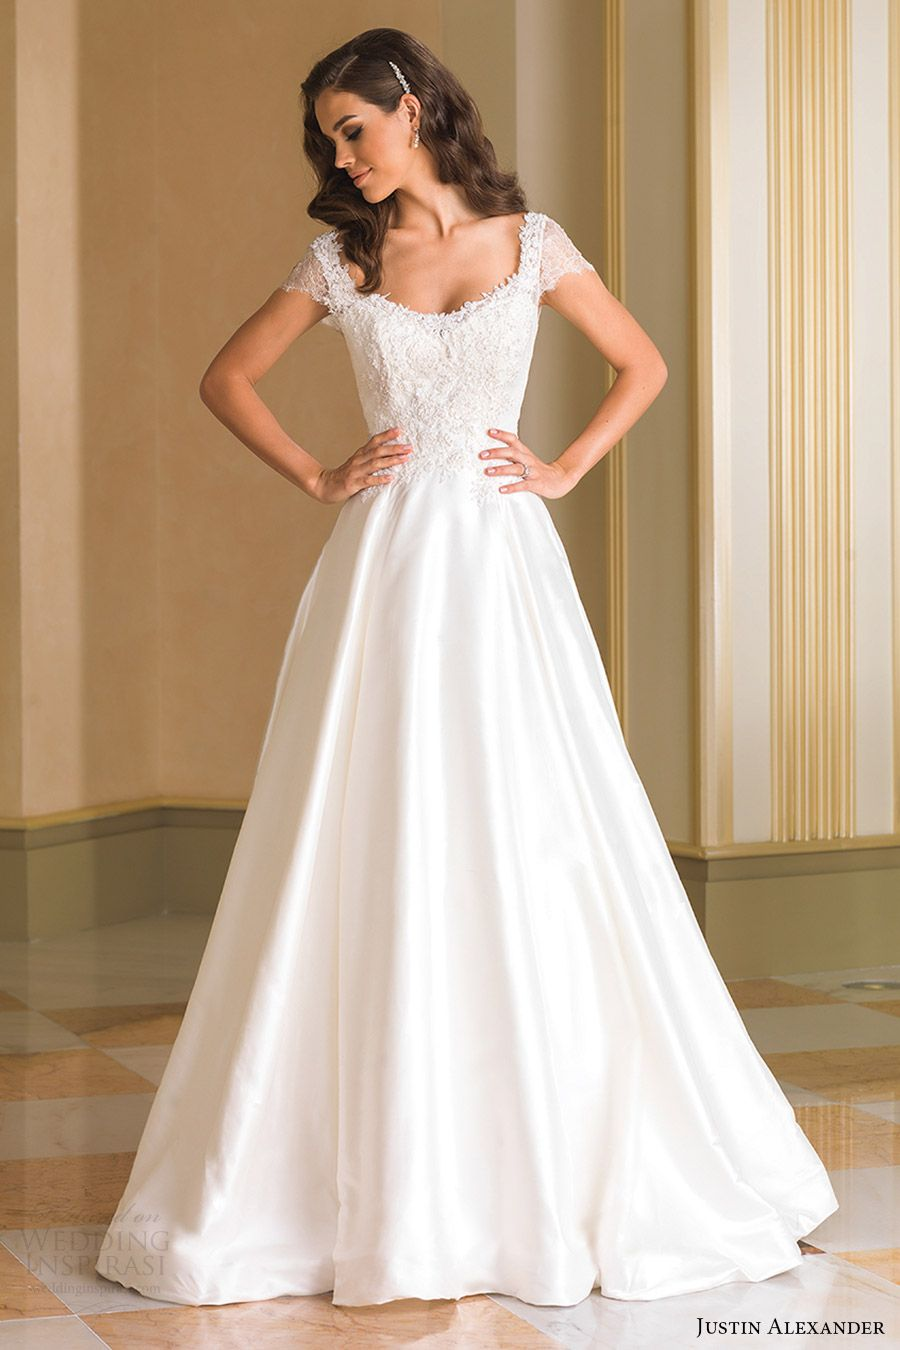 Justin Alexander Bridal Fall 2016 Short Sleeves Scoop Neck Aline Wedding Dress 8861 Mv